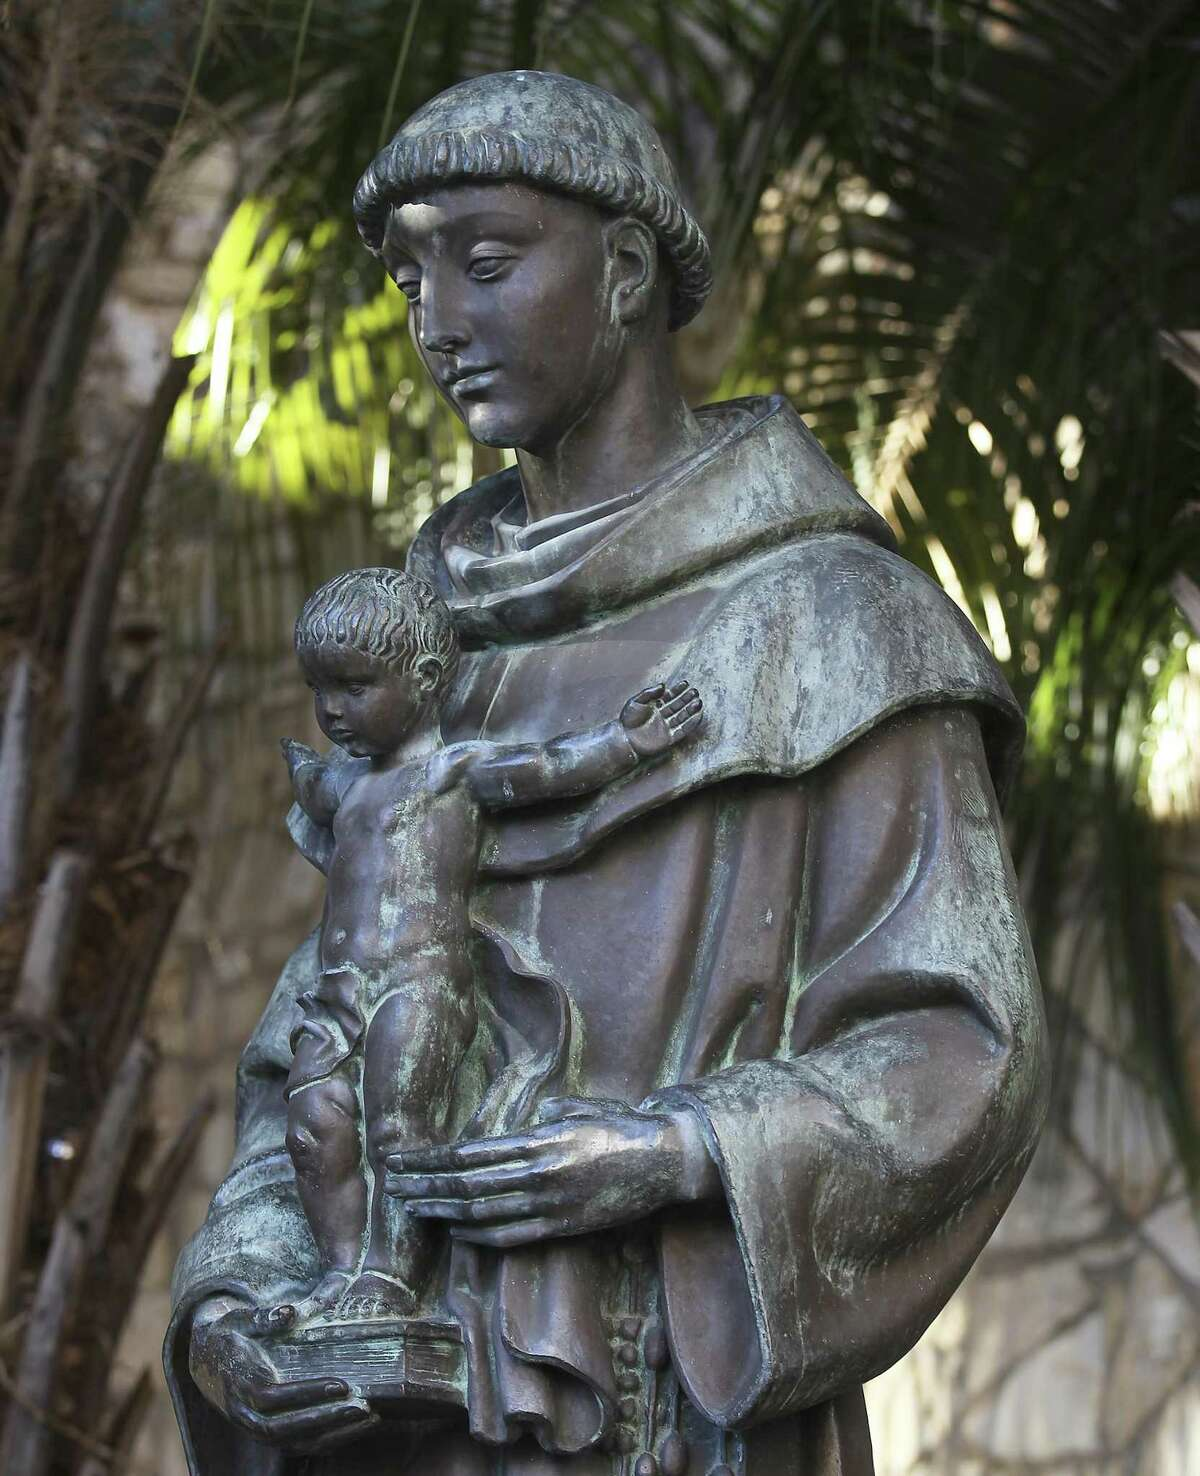 The statue of Saint Anthony of Padua along the River Walk. The seven-foot bronze statue was created by Portuguese sculptor Leopoldo de Almeida and presented to the city during the 1968 HemisFair. (Kin Man Hui/San Antonio Express-News)